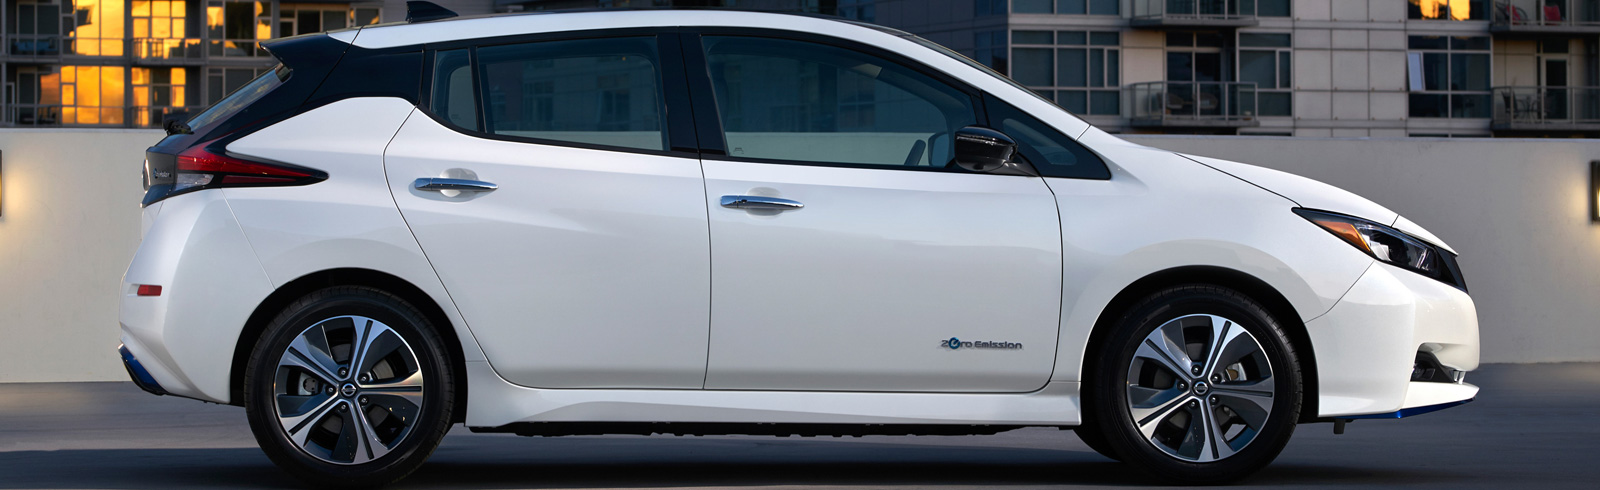 Canadian Pricing For The Nissan Leaf Plus Is Announced